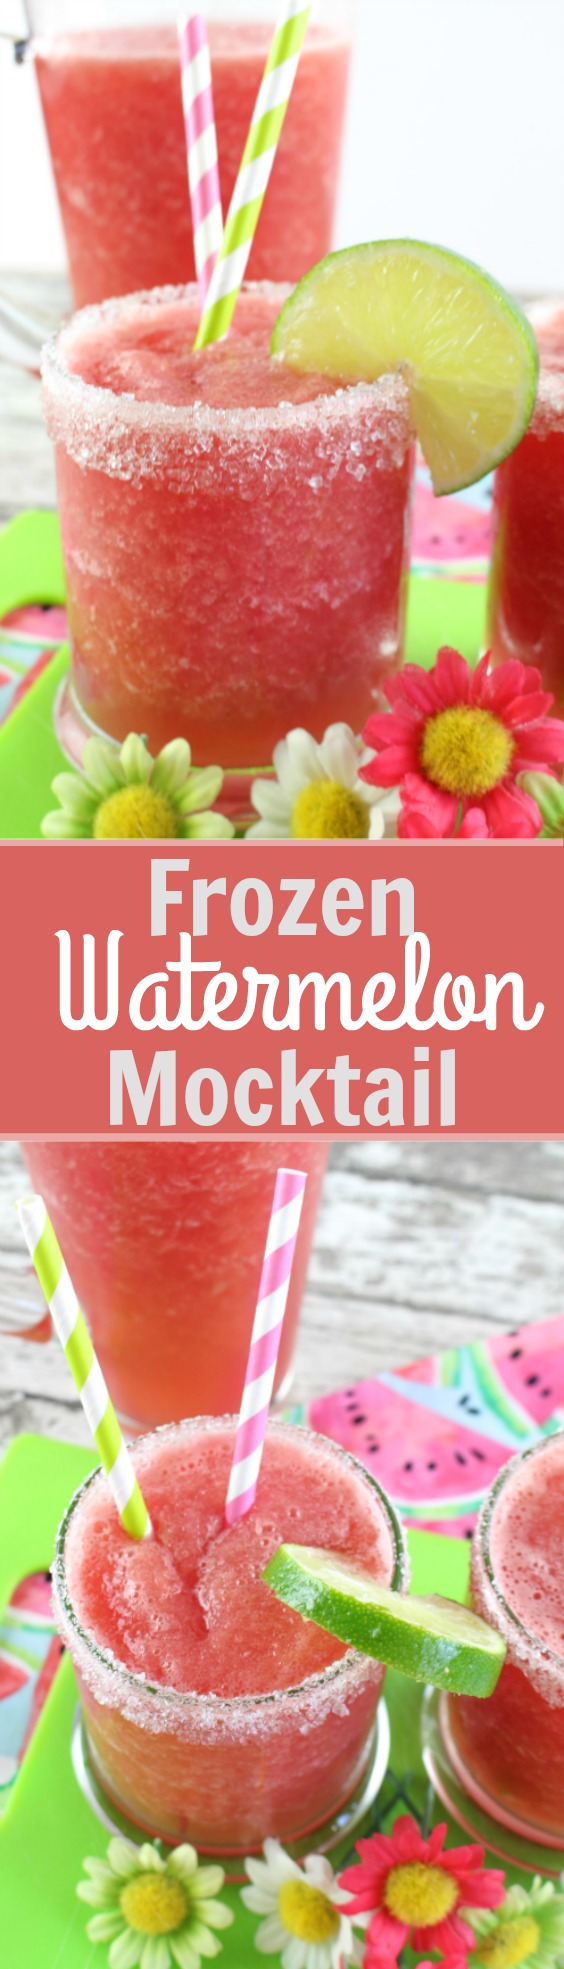 Frozen Watermelon Mocktail - Fresh watermelon, frozen limeade, and sugar comes together to make a refreshing and vibrant summer drink!